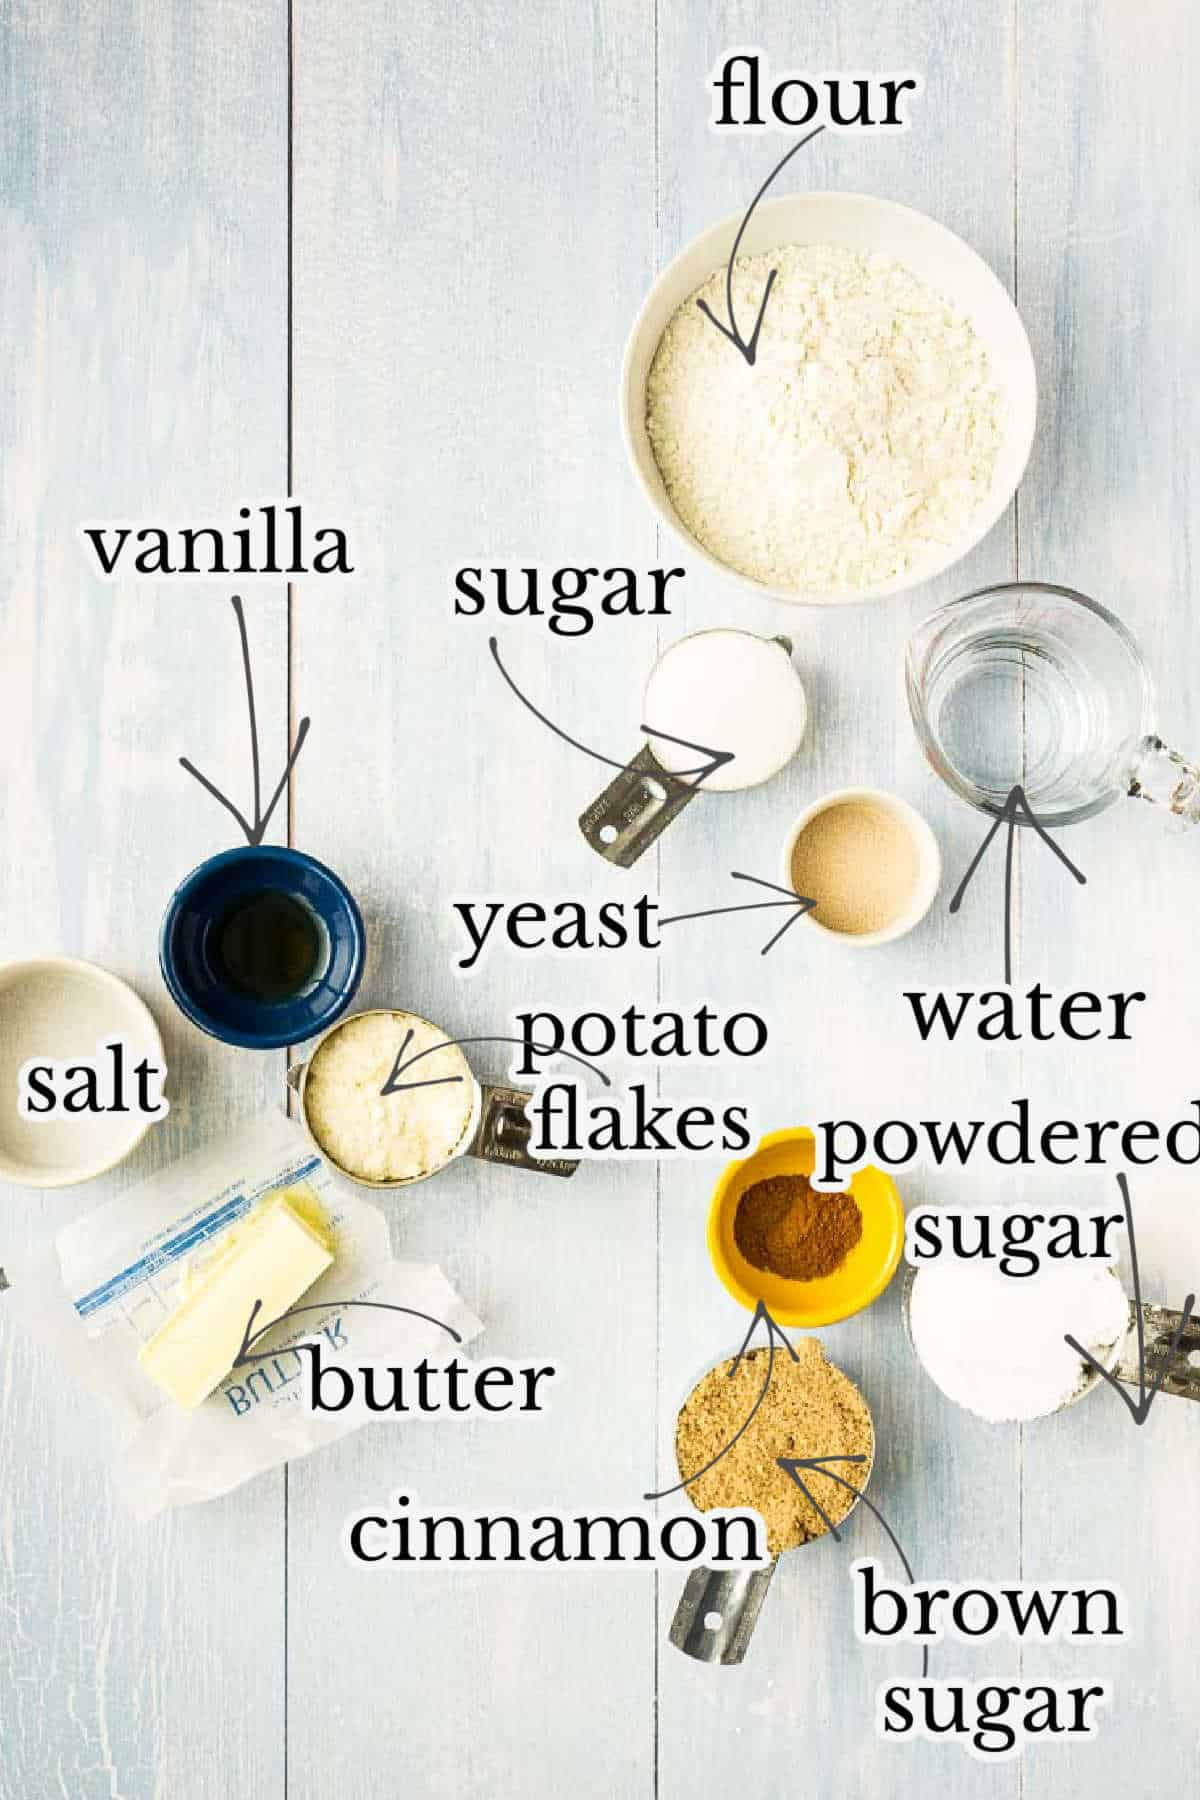 flour, sugar, vanilla, yeast, cinnamon, and other ingredients in small bowls